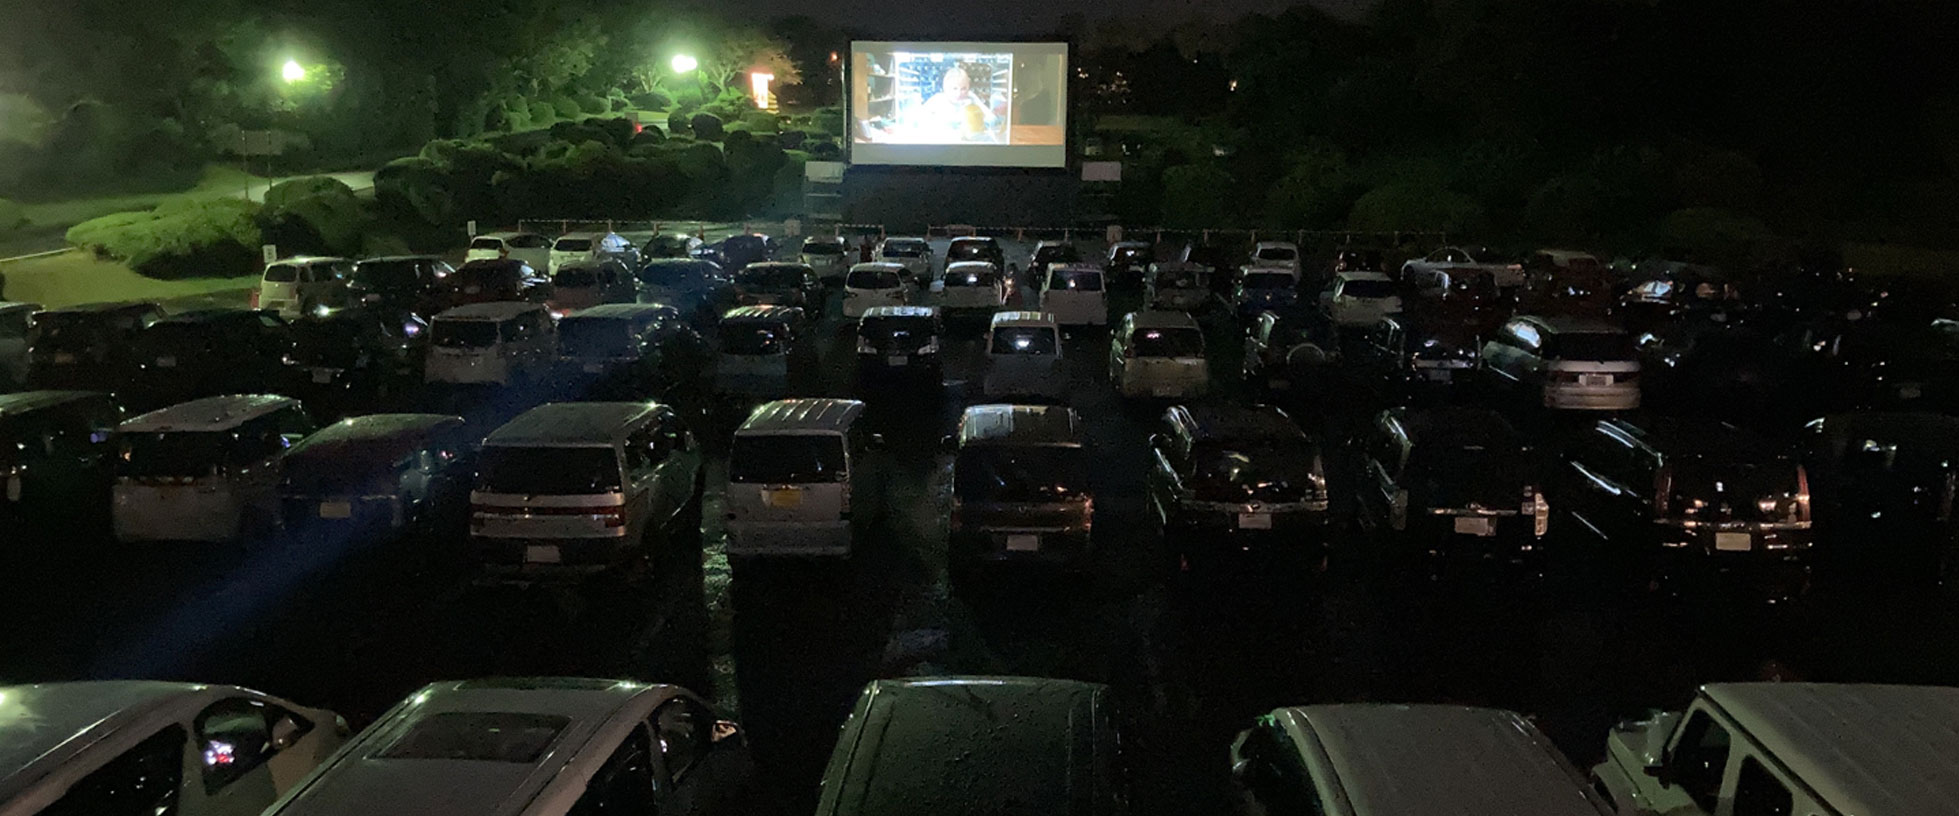 drive_in_theater_01